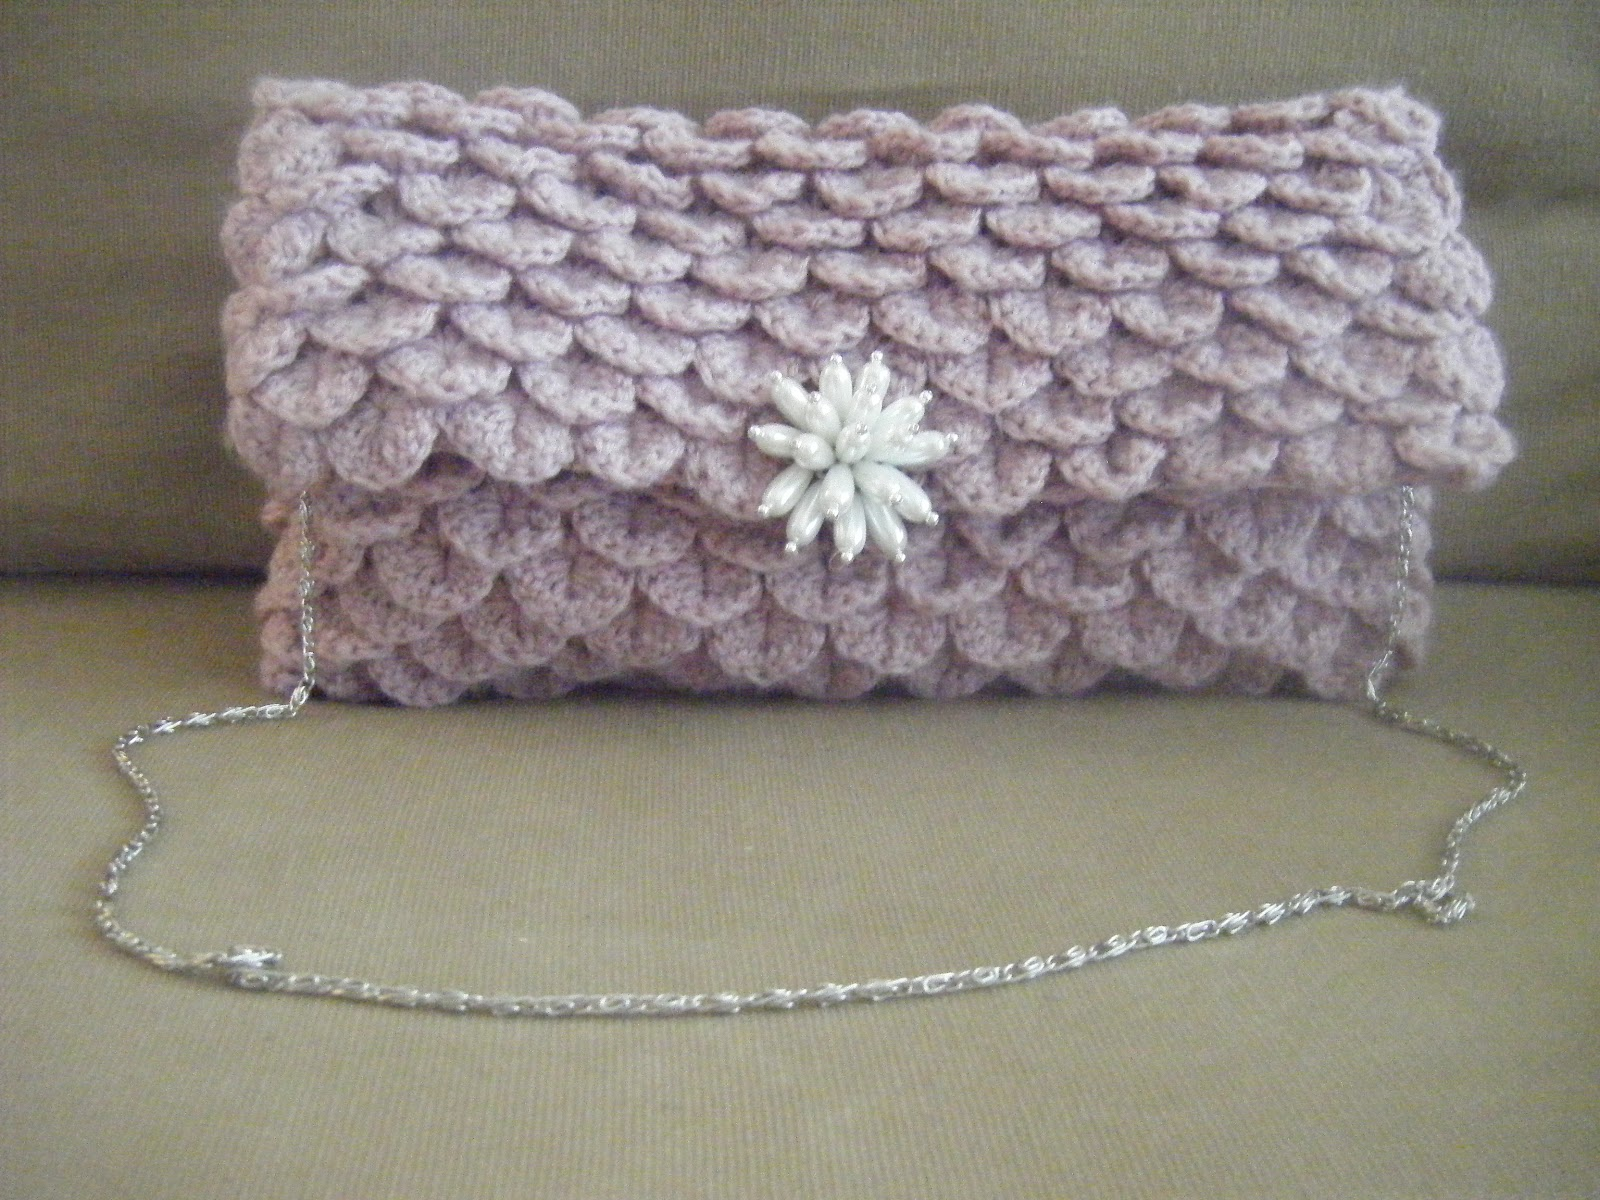 Crochet Clutch Bag Pattern : Best Patterns: Clutch Crocodile Oversize Crochet Pattern